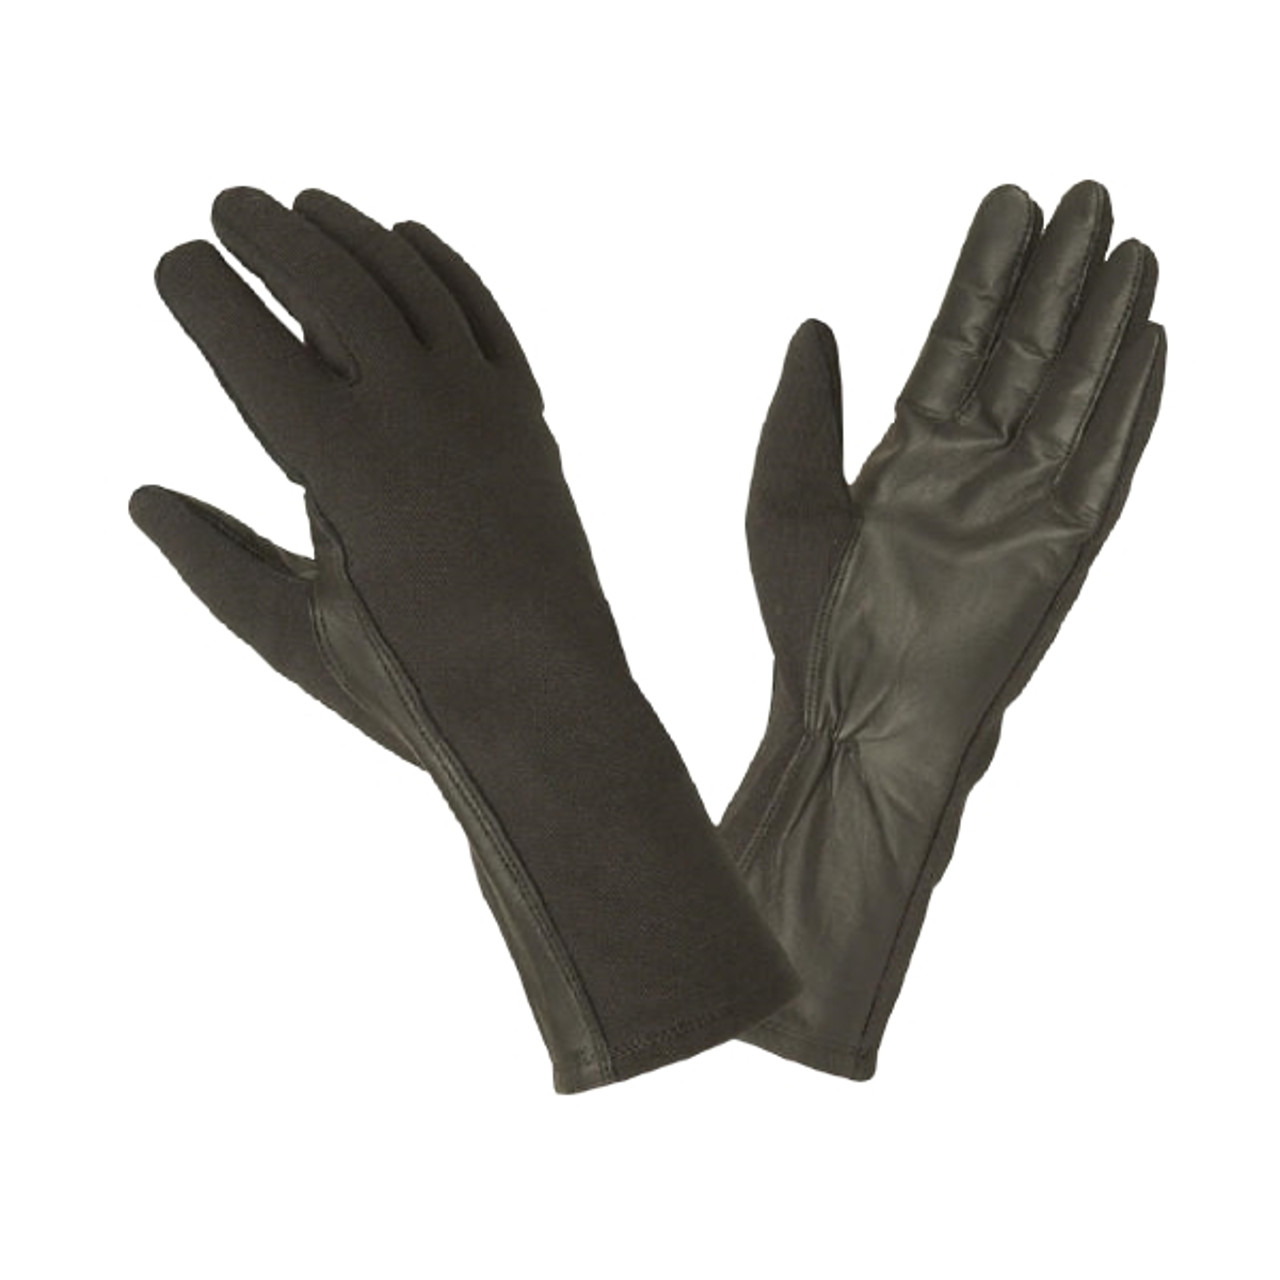 88e104dc430 Military Tactical Gear | Hatch Flight Gloves with Nomex